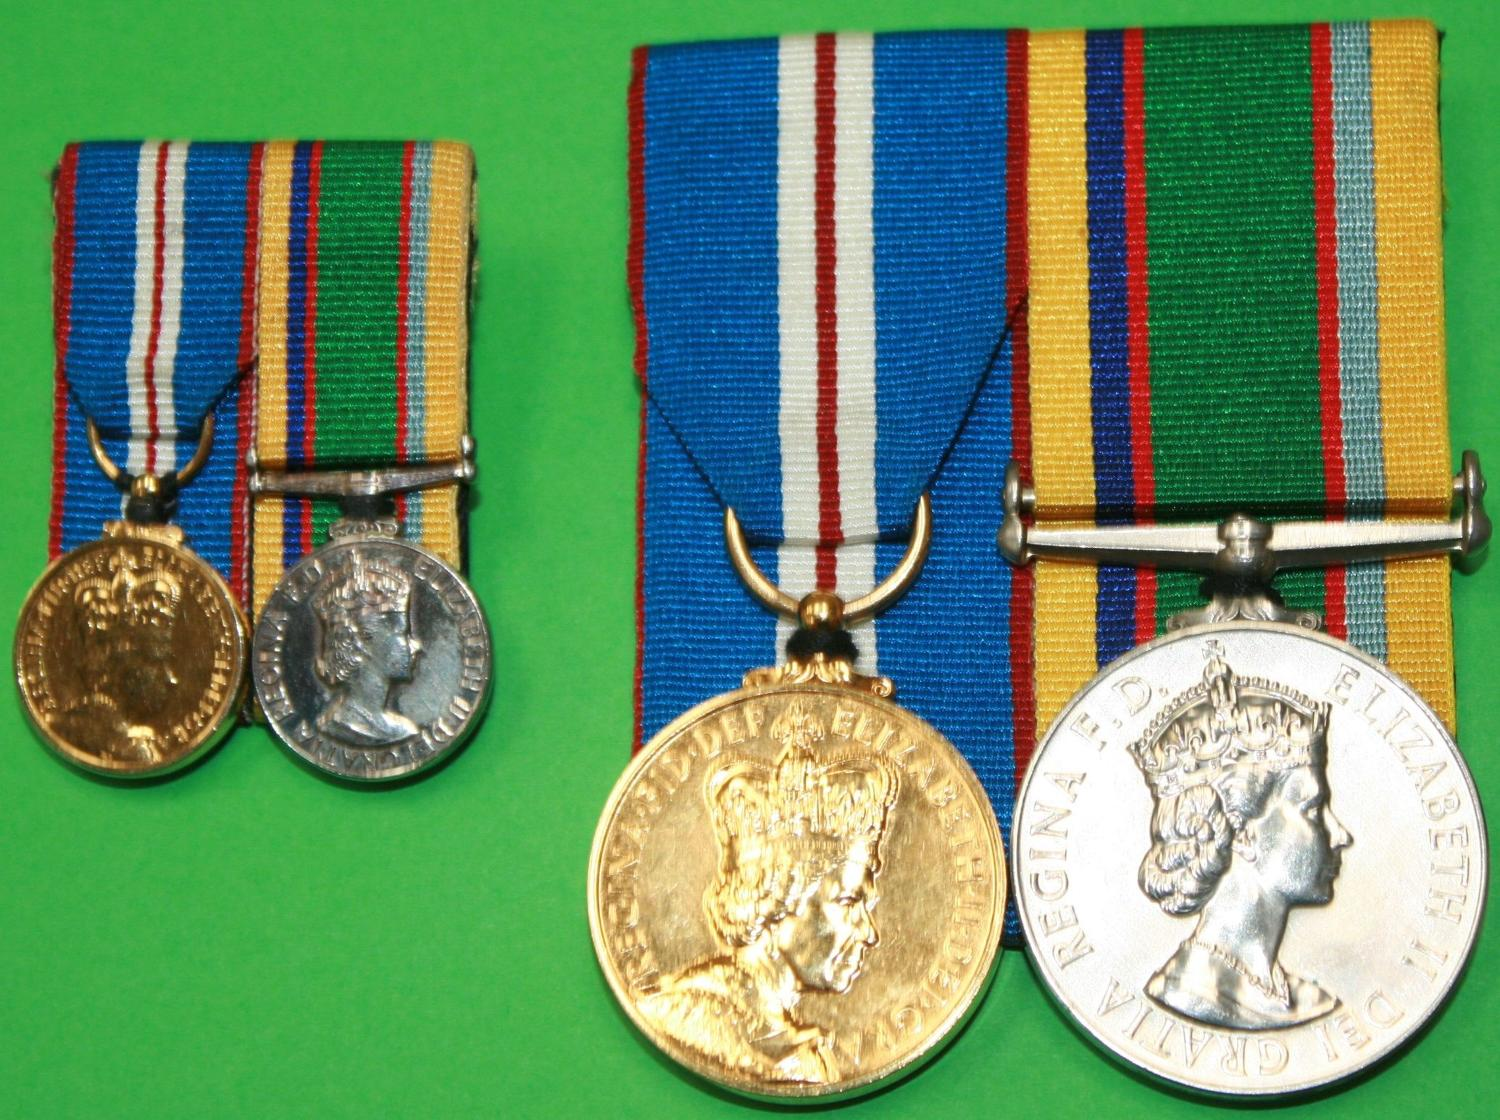 A CADETS LONG SERVICE GOOD CONDUCT MEDAL & 2002 JUBILEE MEDAL